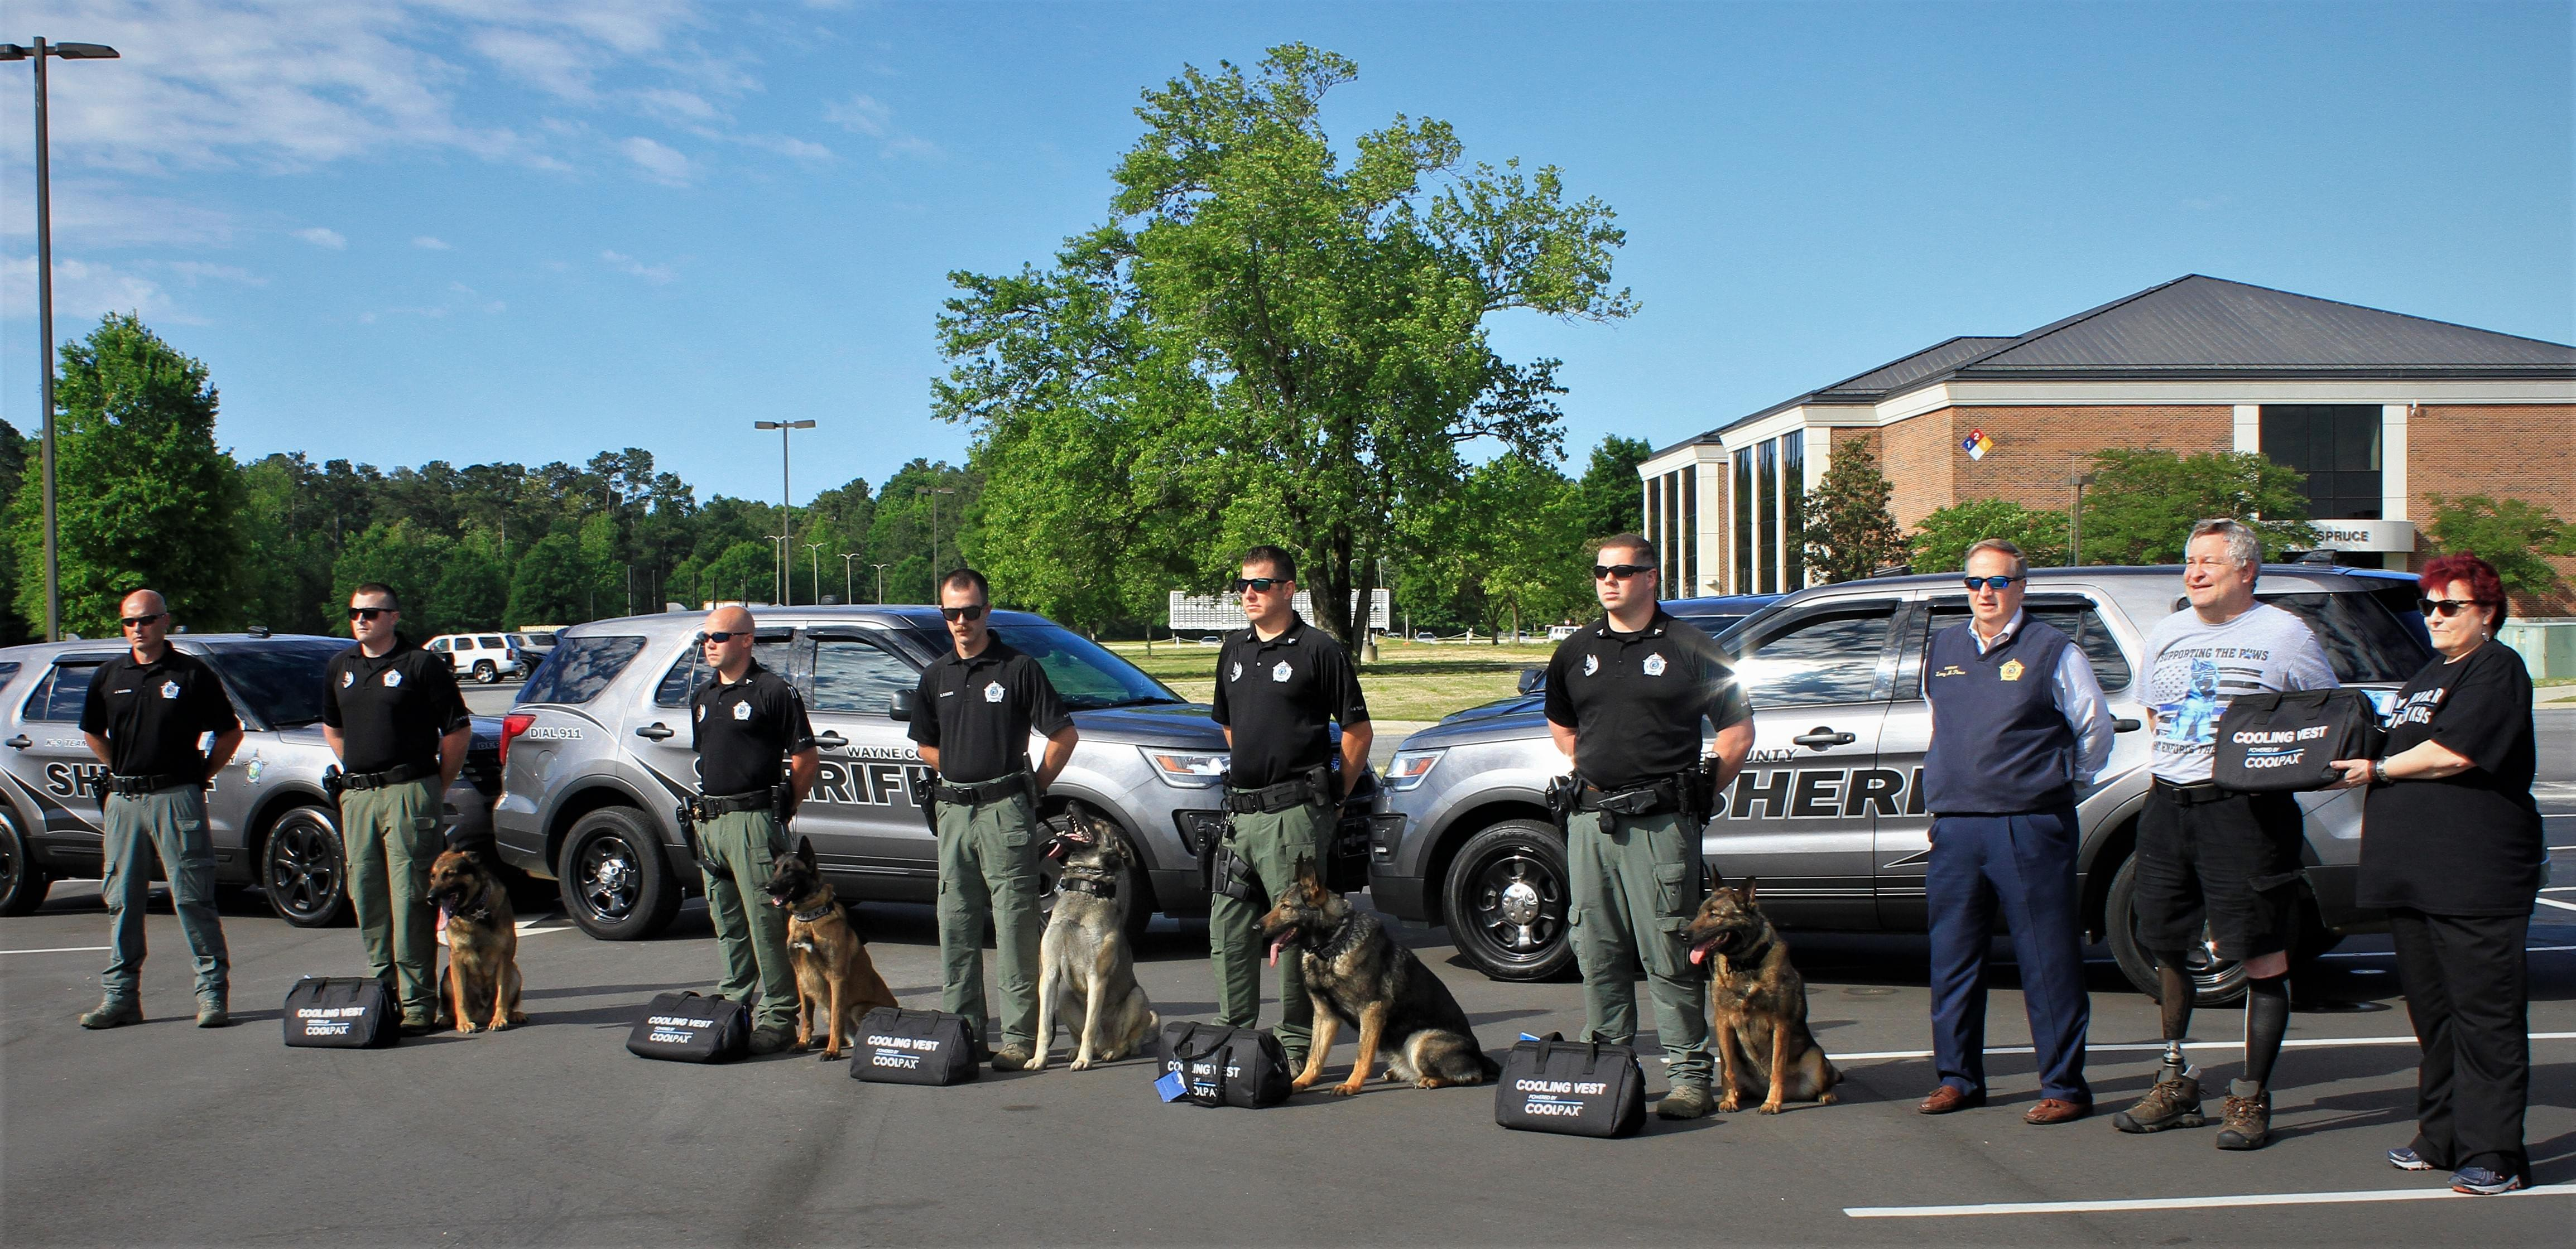 New Cooling Vests Donated To Sheriff's K-9 Units (PHOTOS)